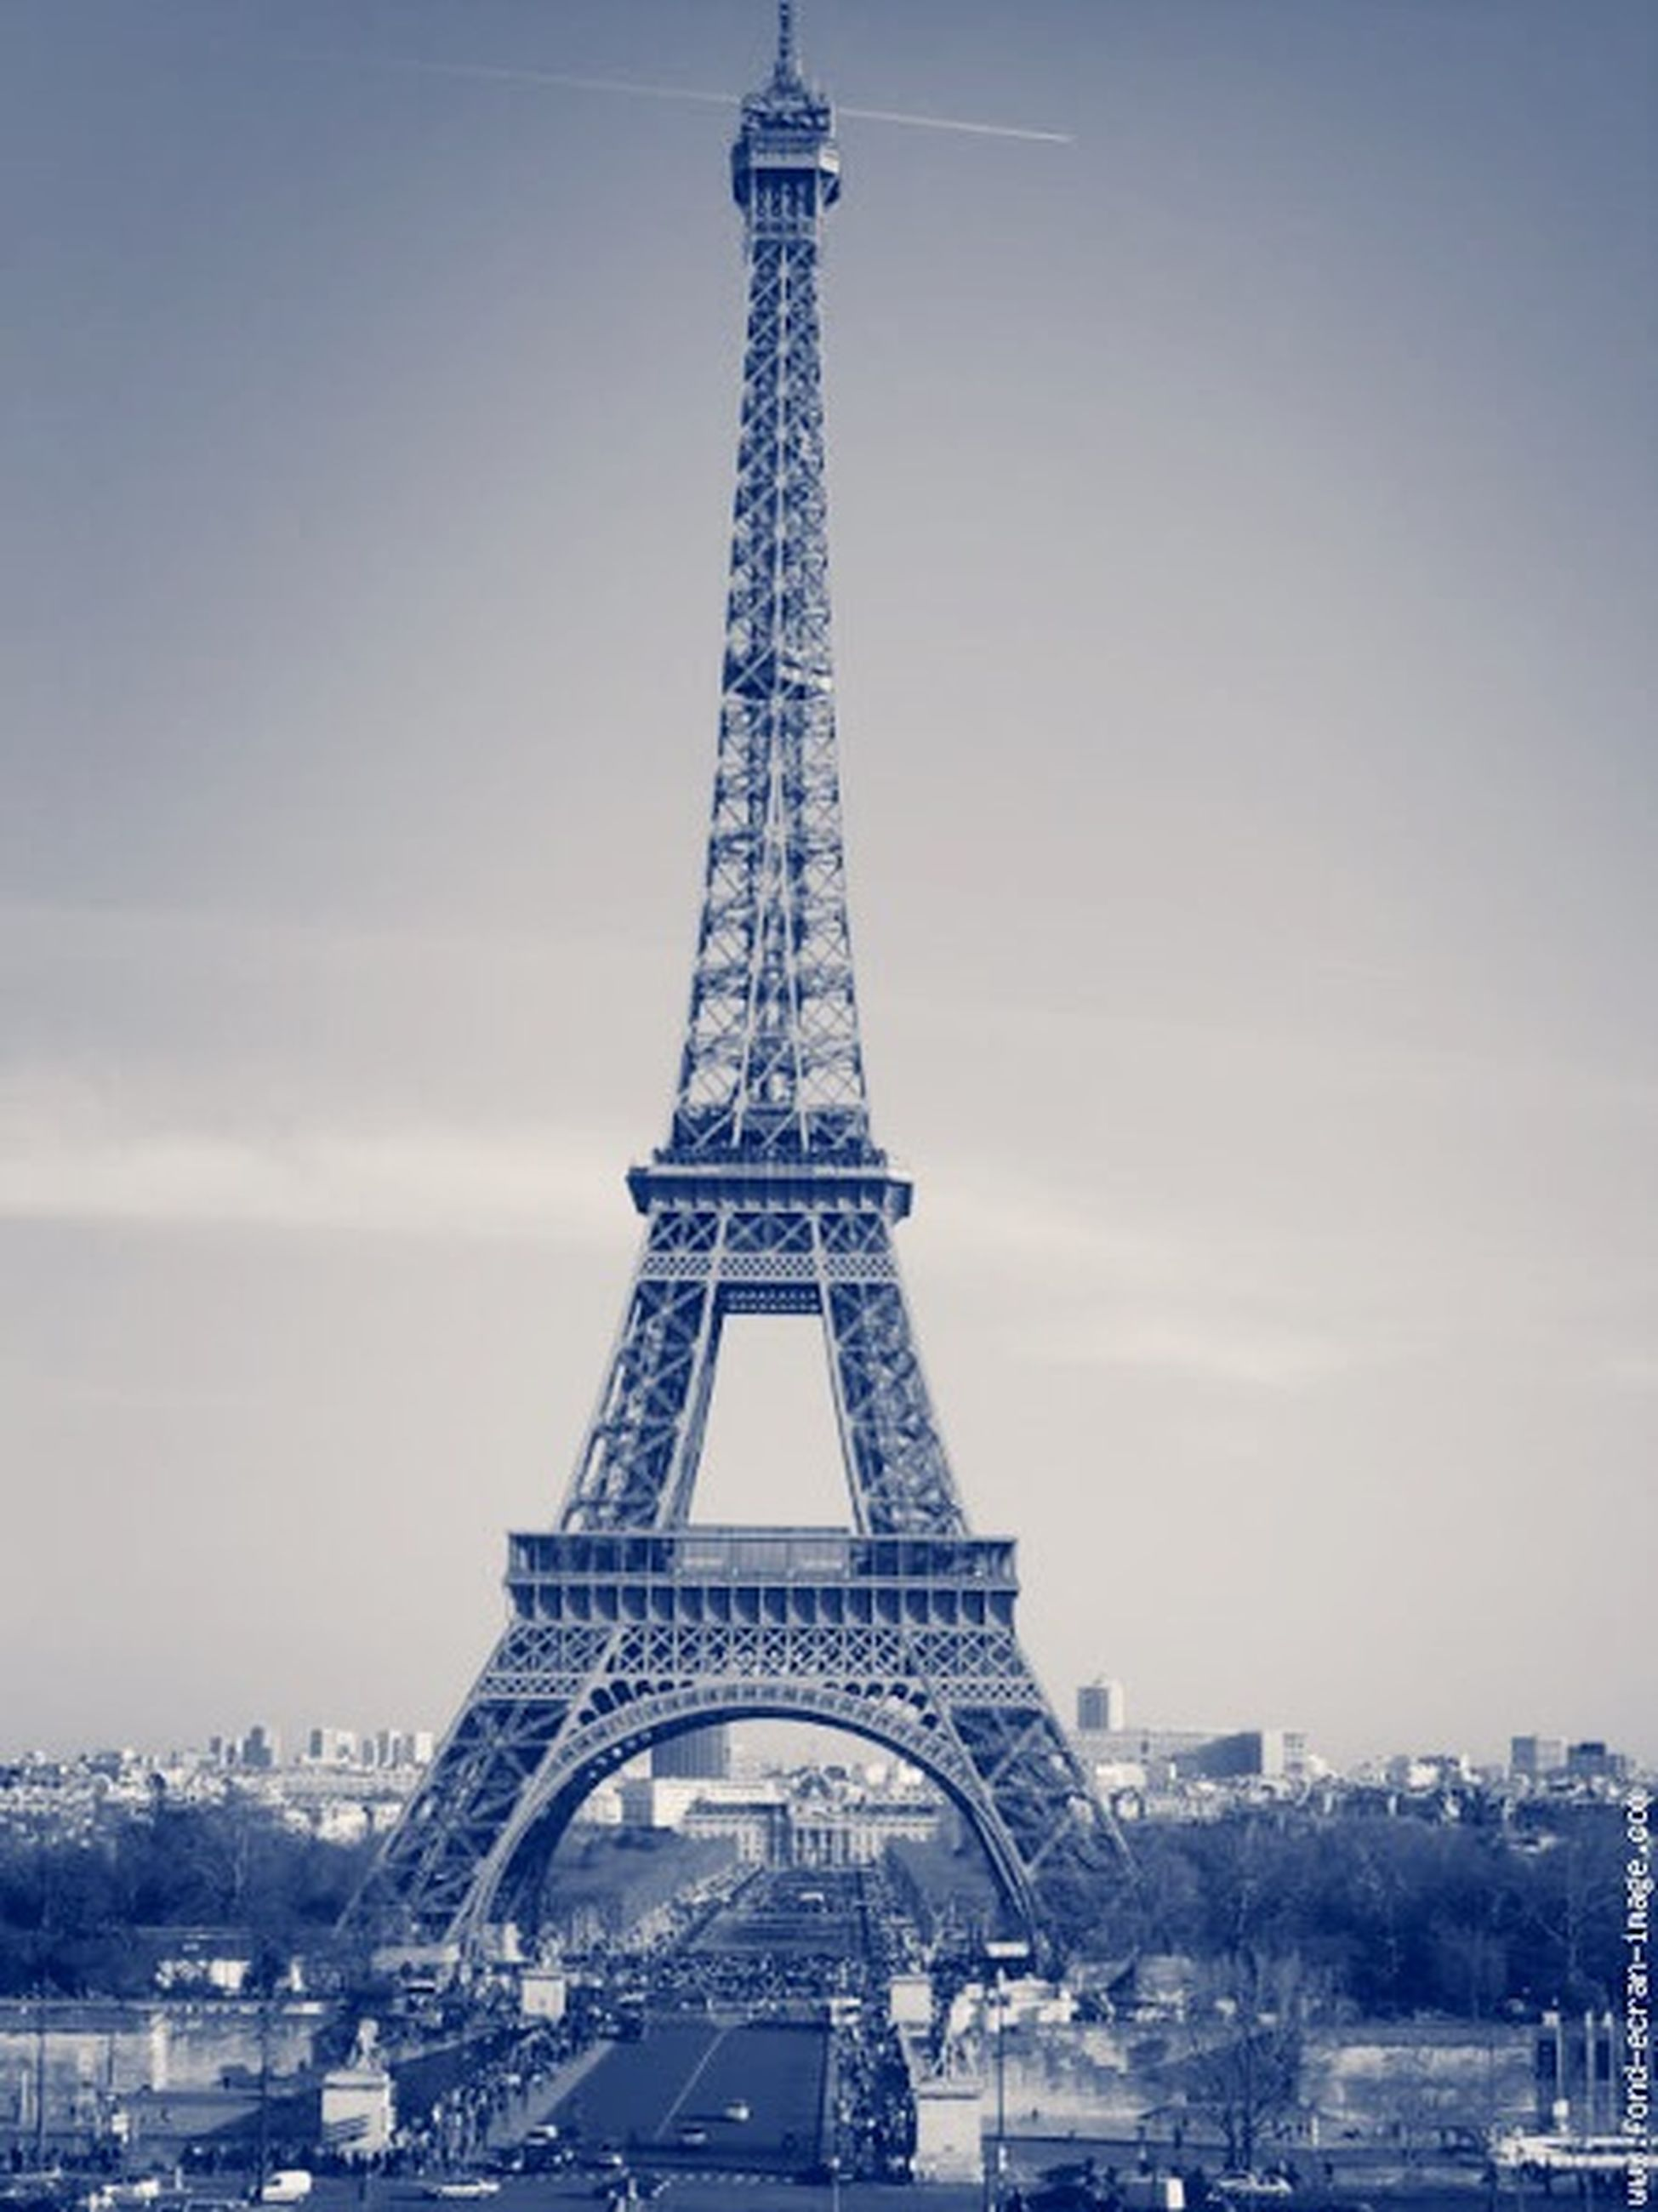 architecture, built structure, eiffel tower, tower, tall - high, international landmark, famous place, capital cities, travel destinations, city, building exterior, tourism, travel, sky, culture, metal, transportation, tall, low angle view, skyscraper